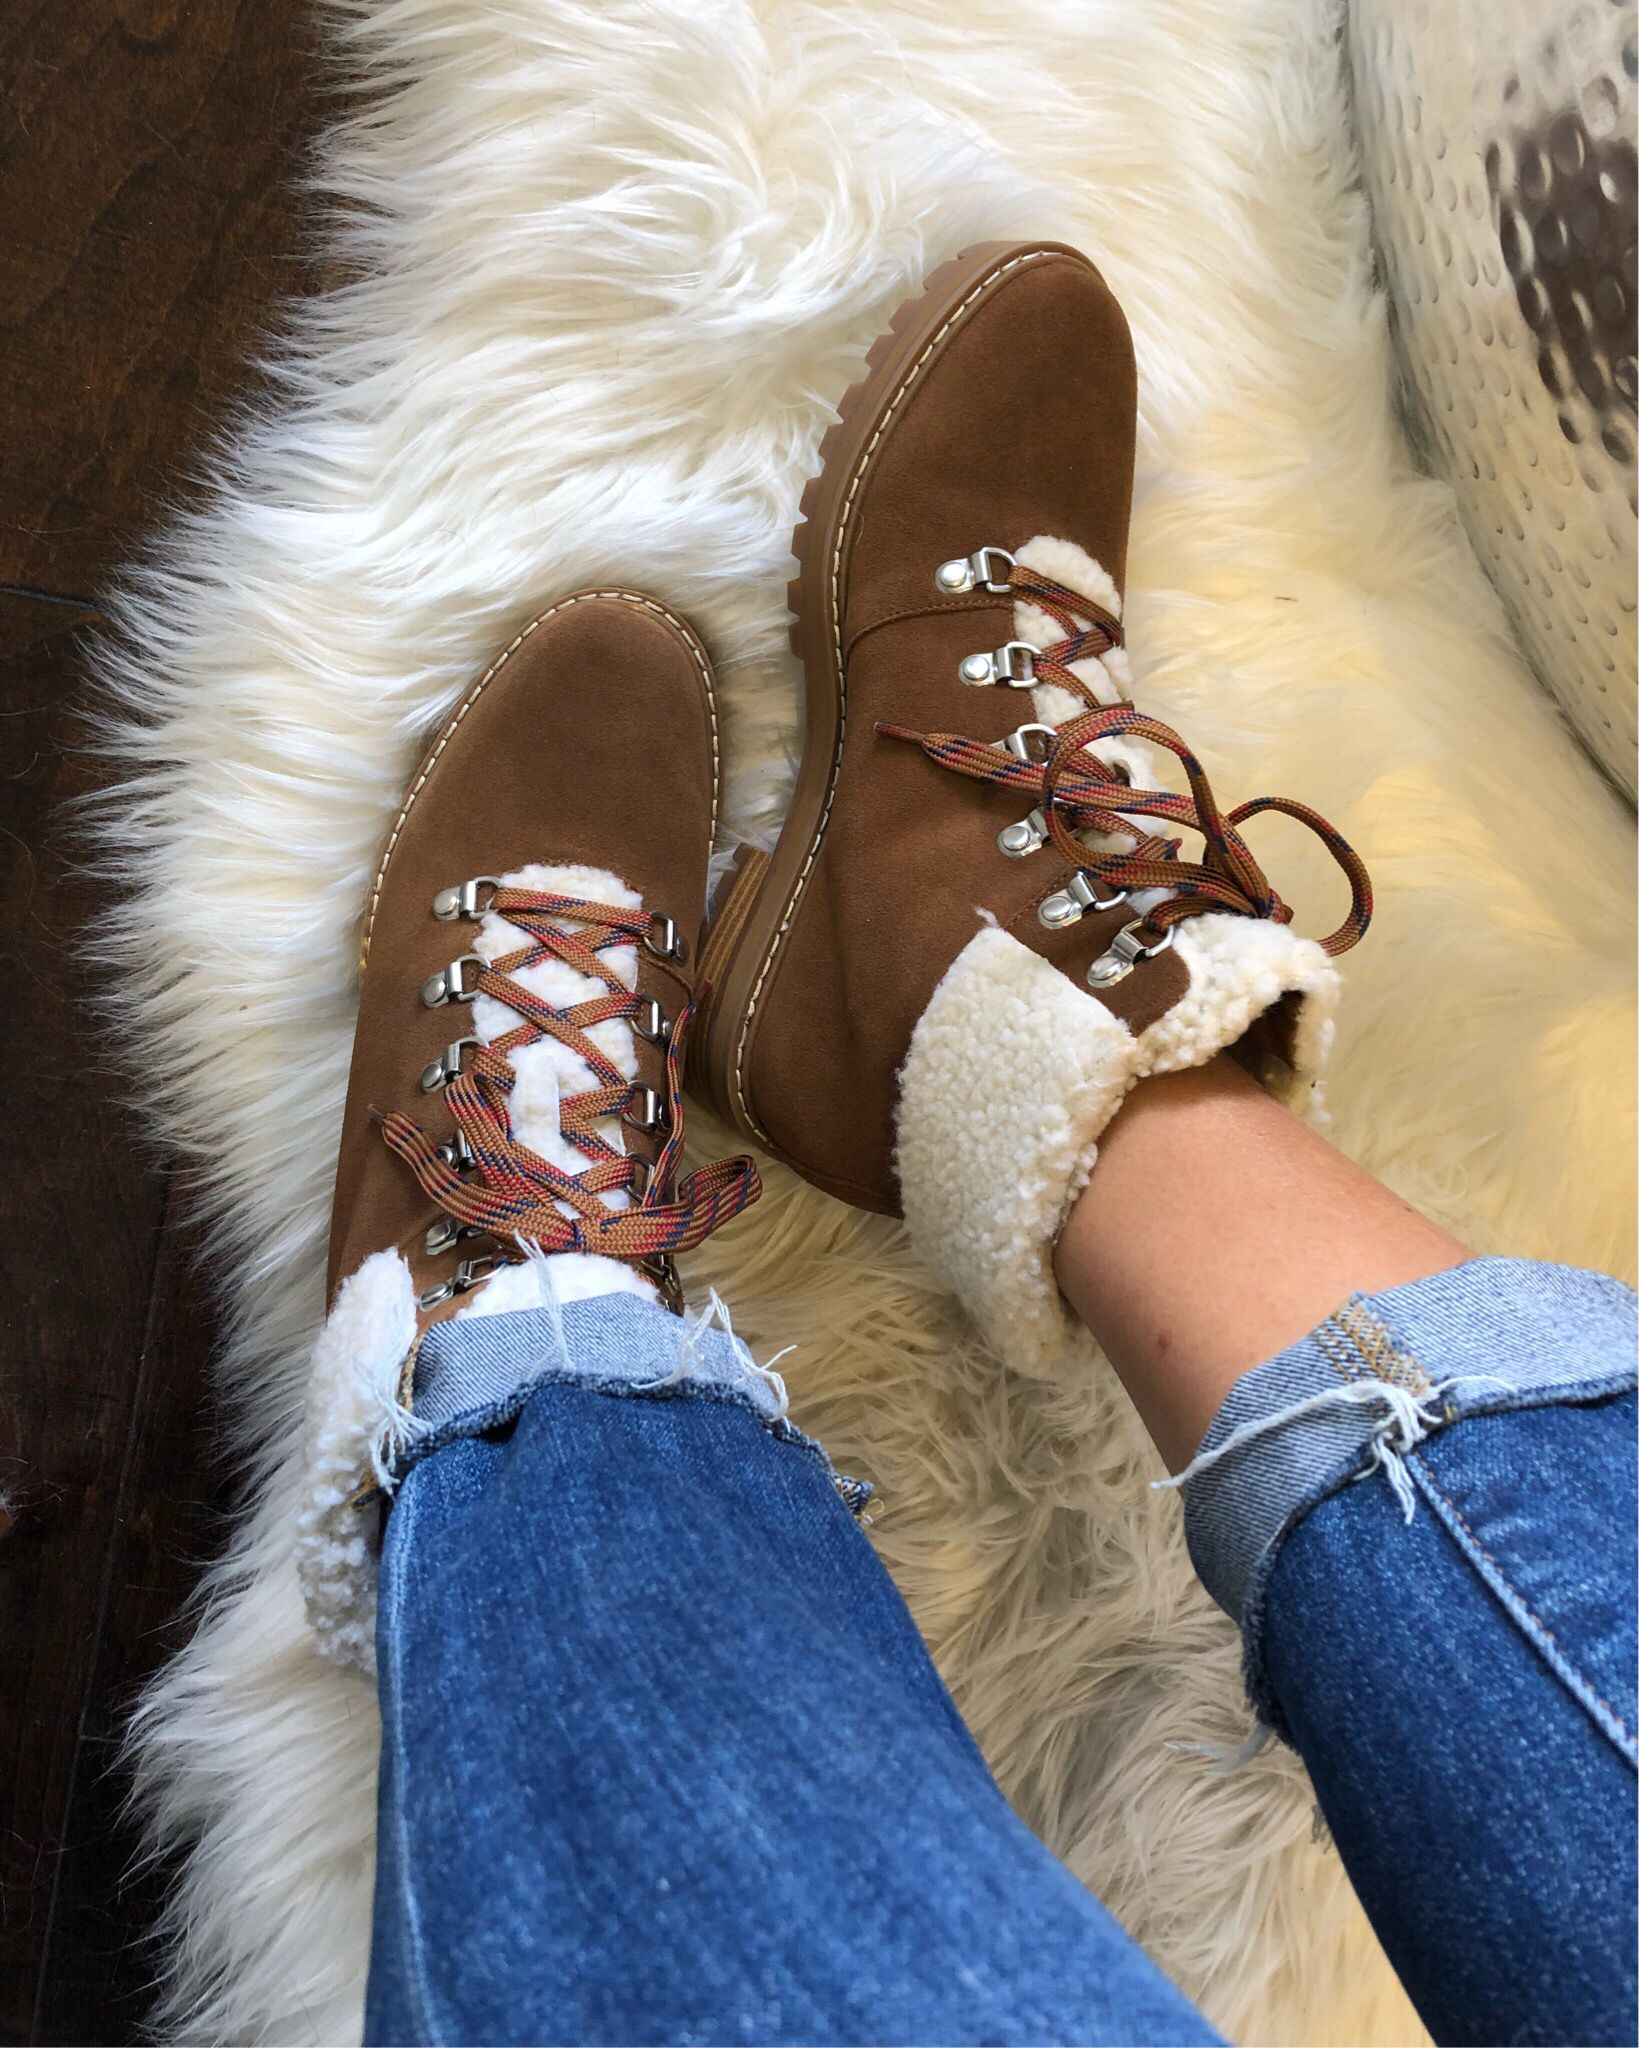 Hiking boots with shearling trim for